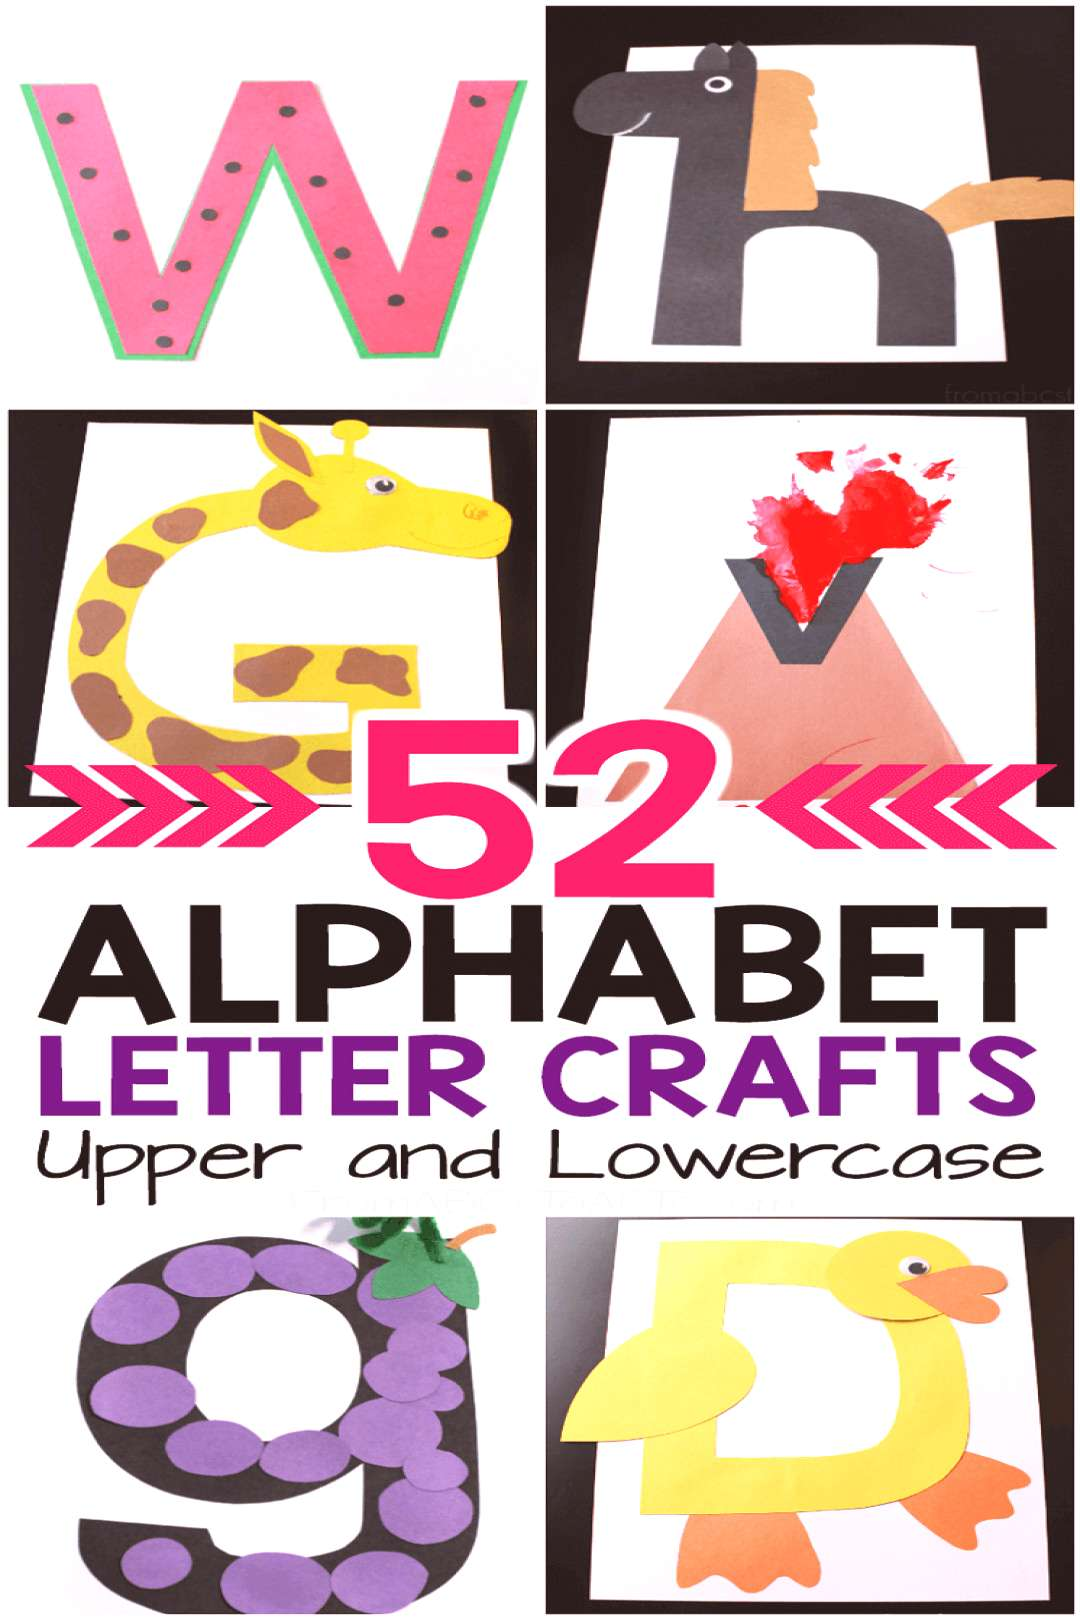 Oh my gosh! My preschooler is going to absolutely LOVE making this alphabet book! I love that it in